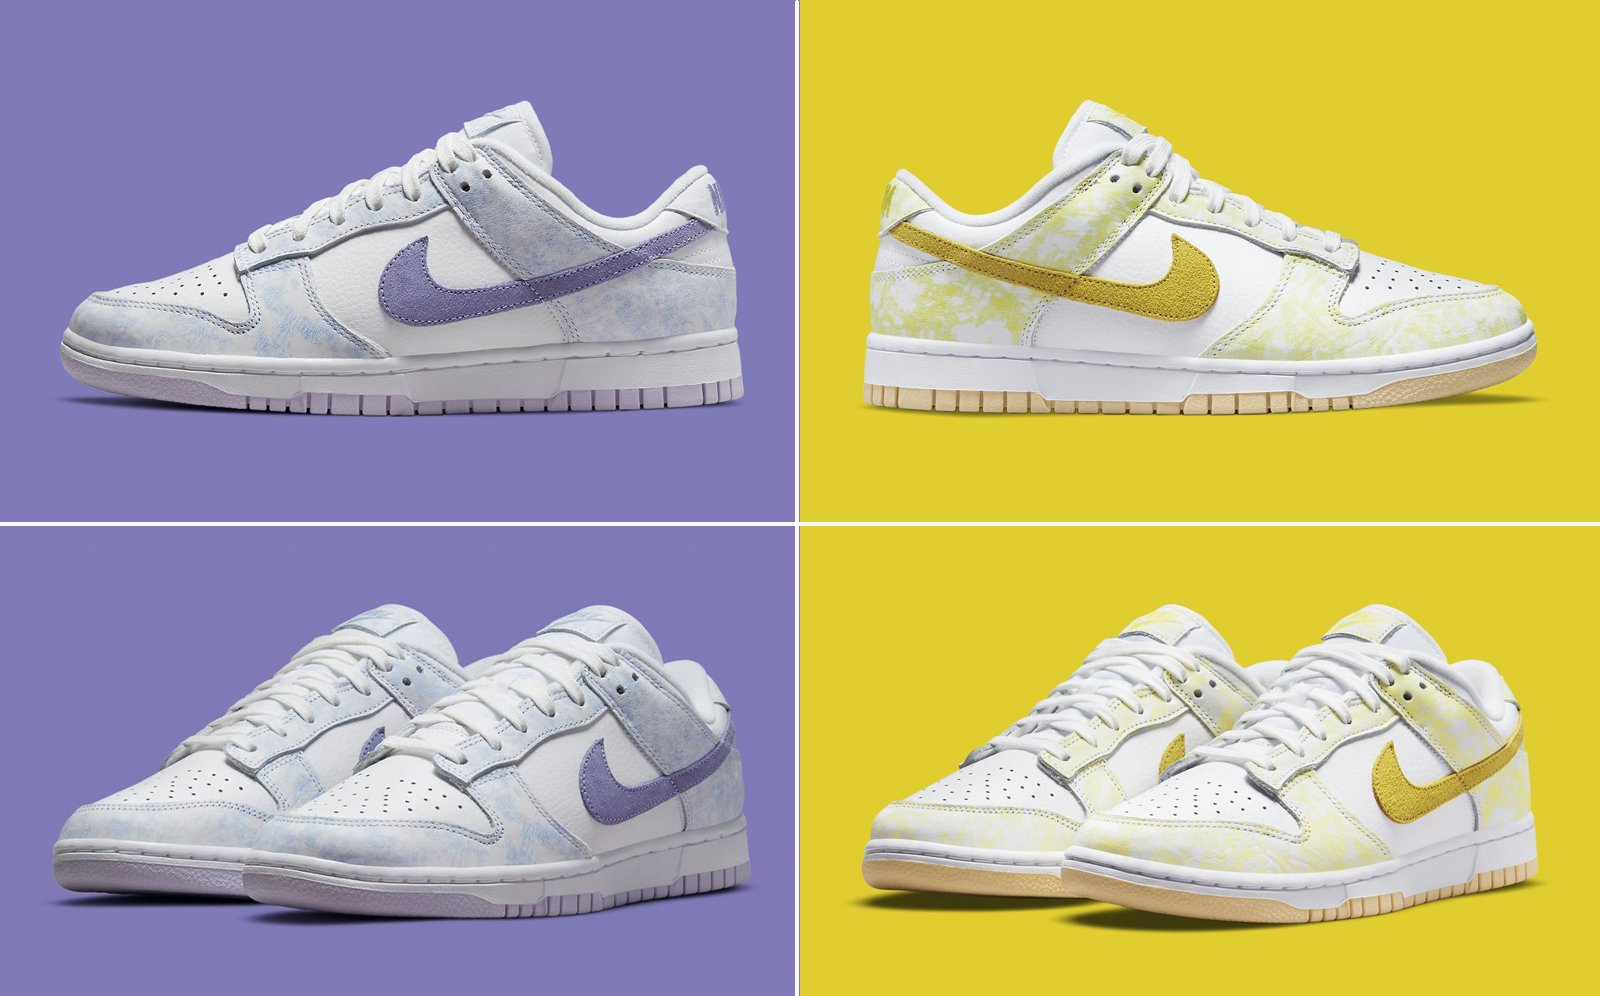 Nike Dunk Low Purple Pulse and Yellow Strike Ready for Summer